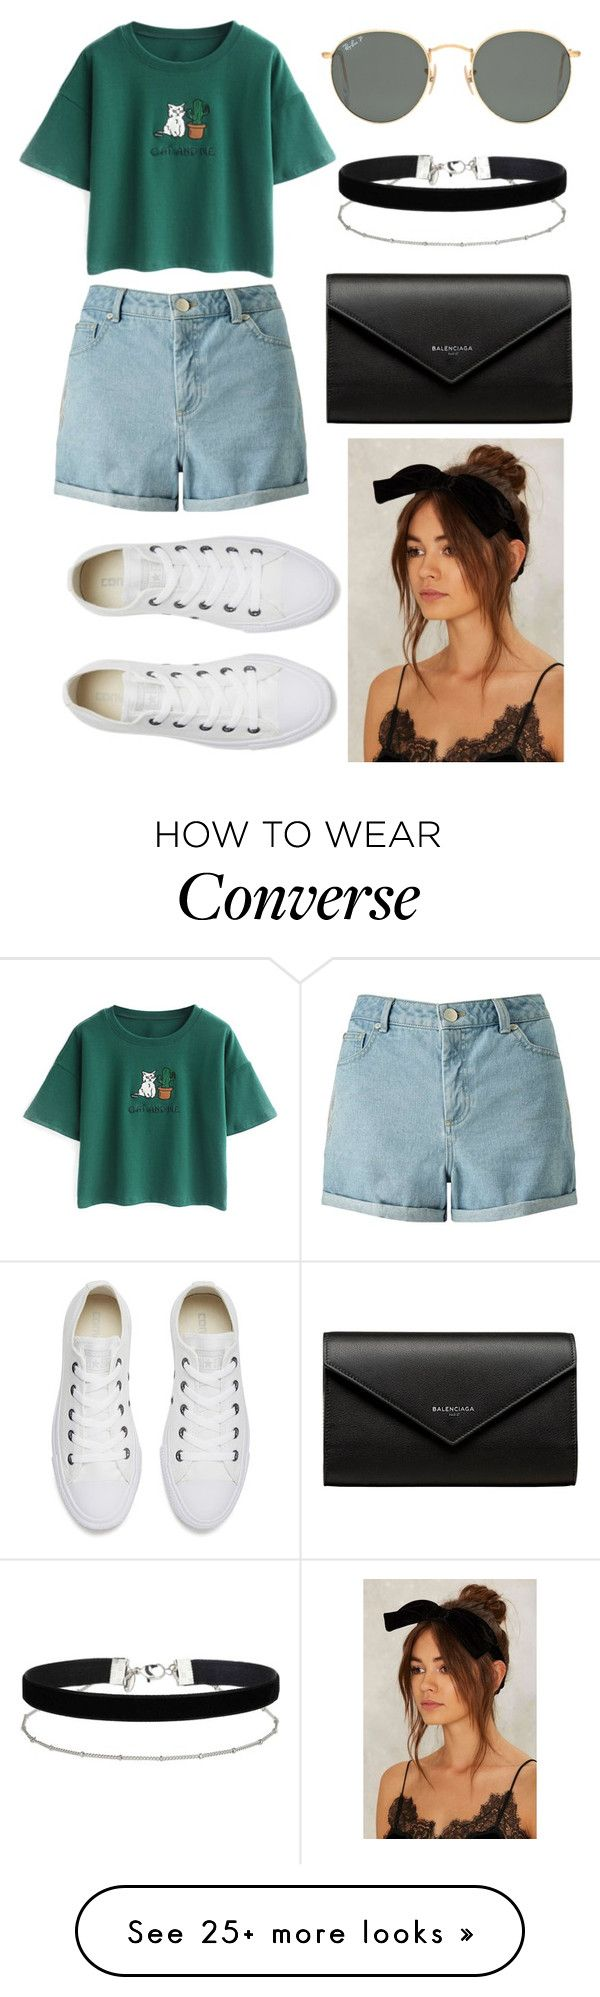 """"" by alda-naura on Polyvore featuring Miss Selfridge, Chicnova Fashion, Converse, Ray-Ban, Balenciaga, polyvorecommunity and polyvorefashion"